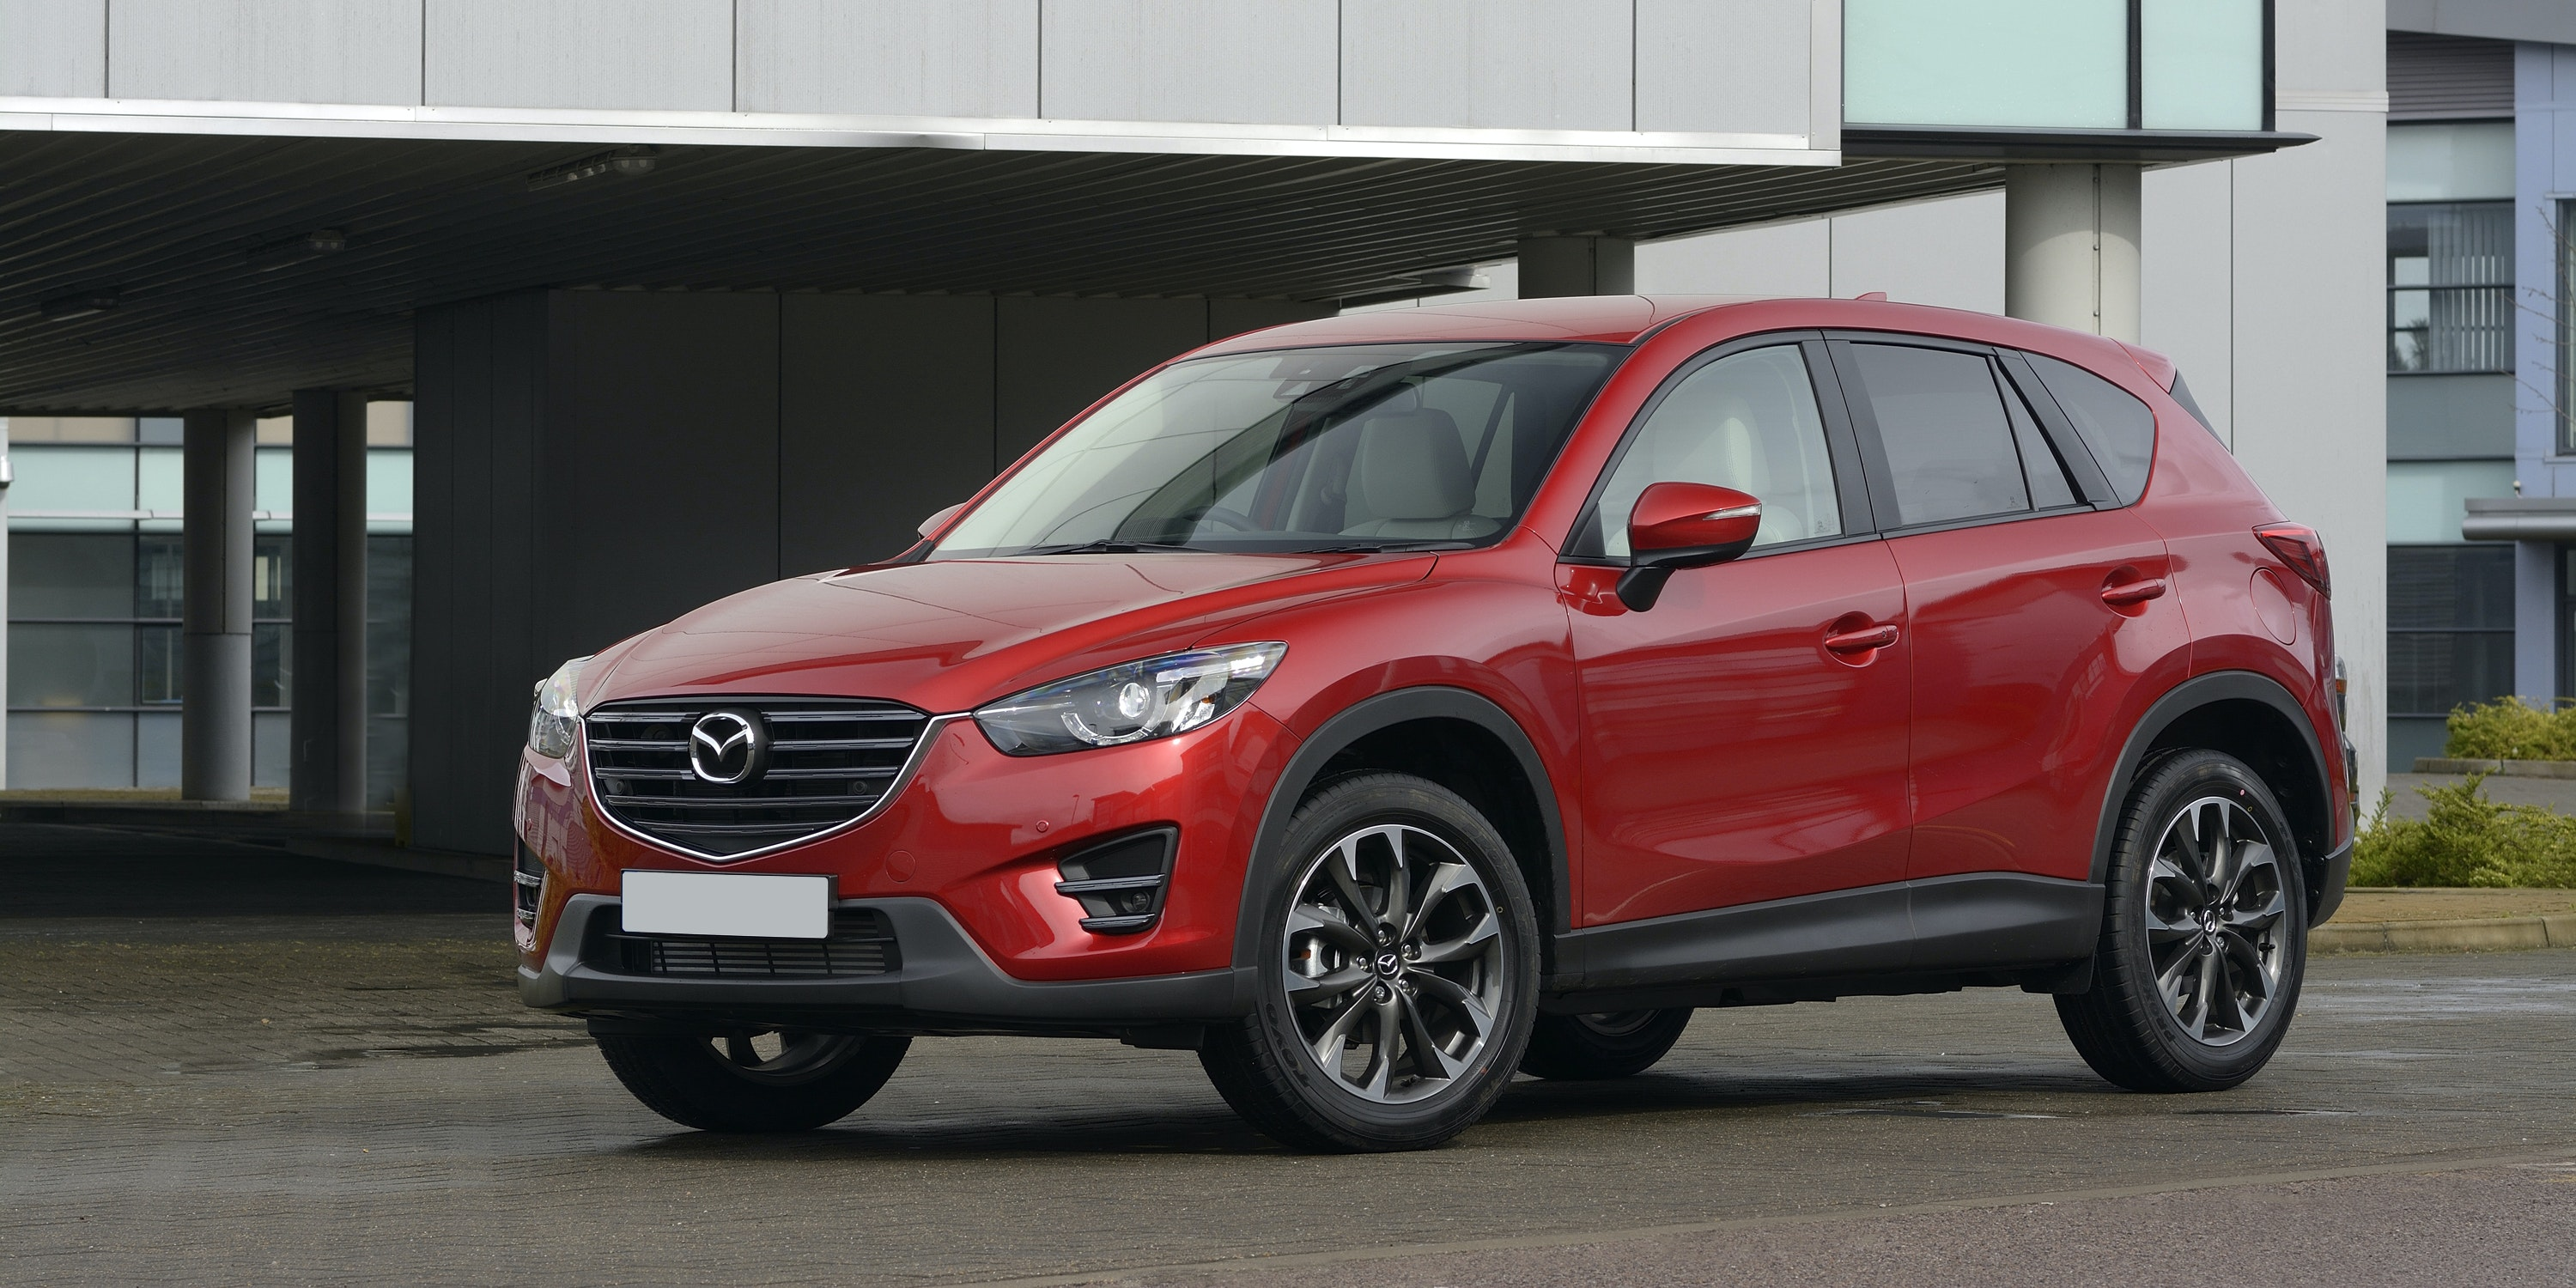 Mazda CX-5 (2012-2017) Review | carwow